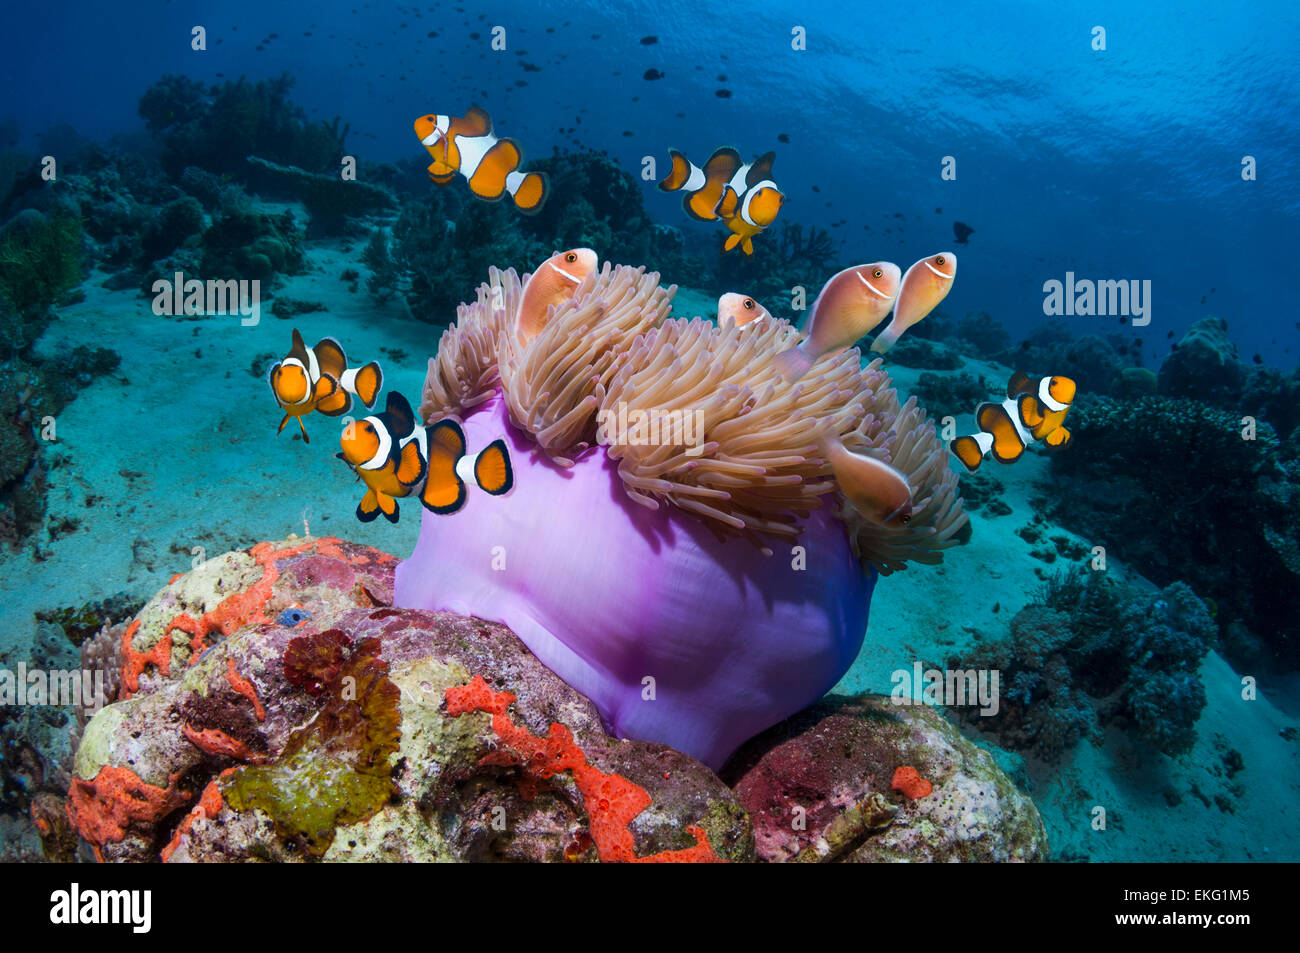 Poisson clown (Amphiprion percula clown) et Rose (un poisson clown perideraion) avec anémone magnifique sur Photo Stock